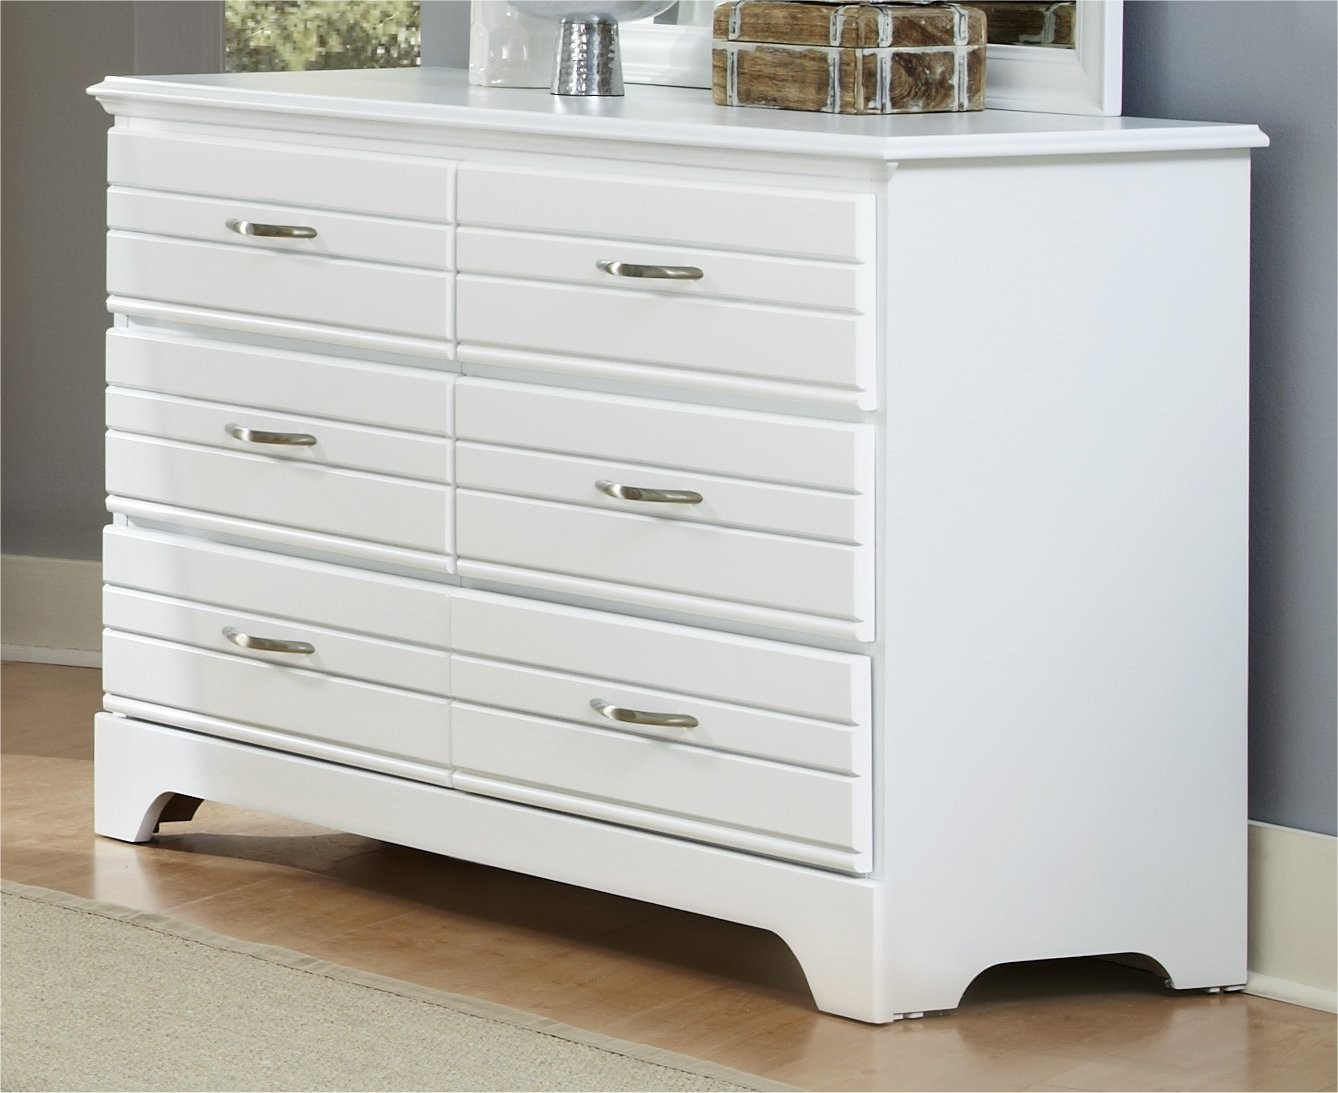 Modern 6 Drawer Dresser Solid Wood Furniture